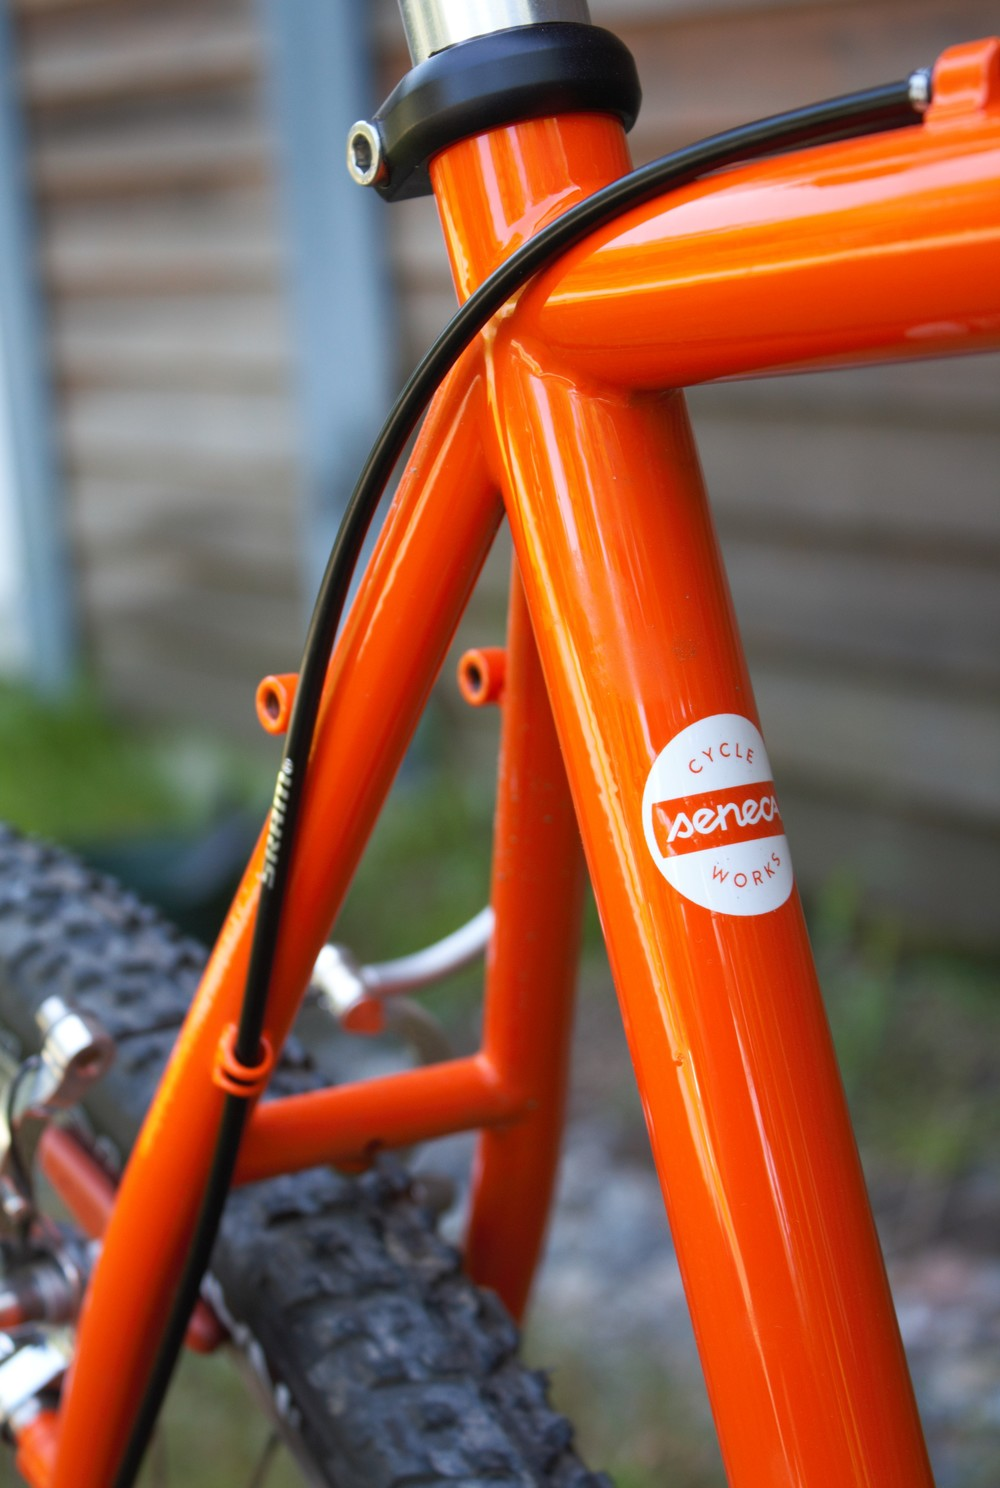 Seat tube logo, standard on all frames.